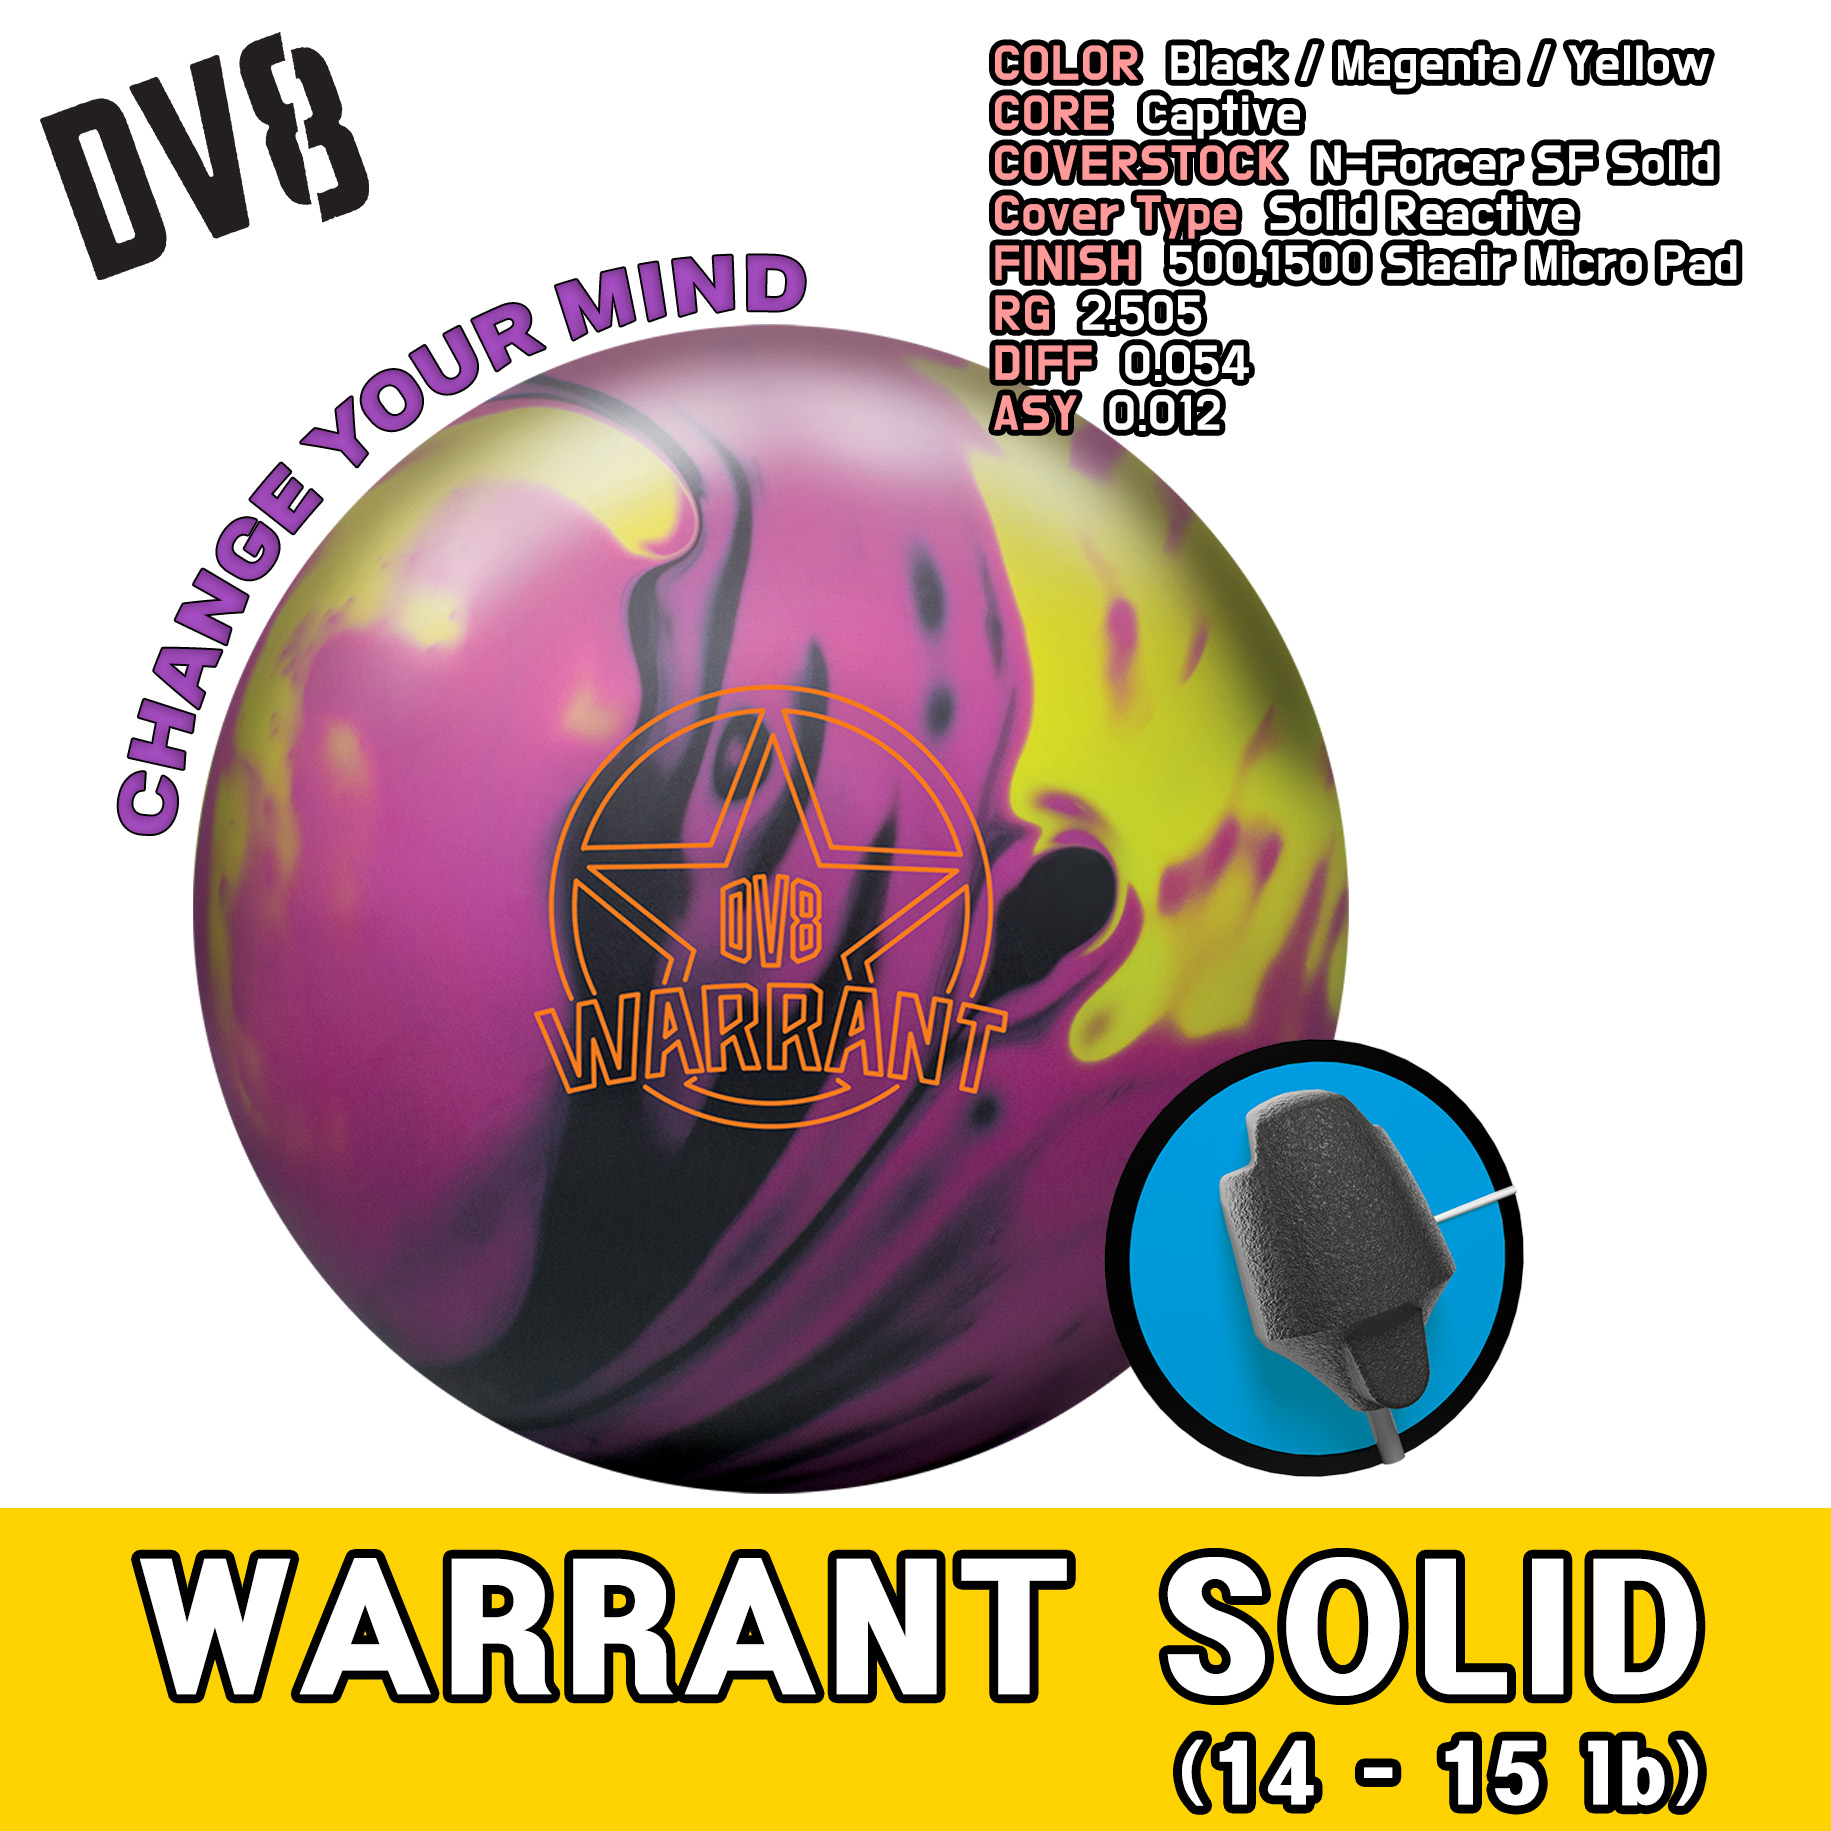 Warrant Solid